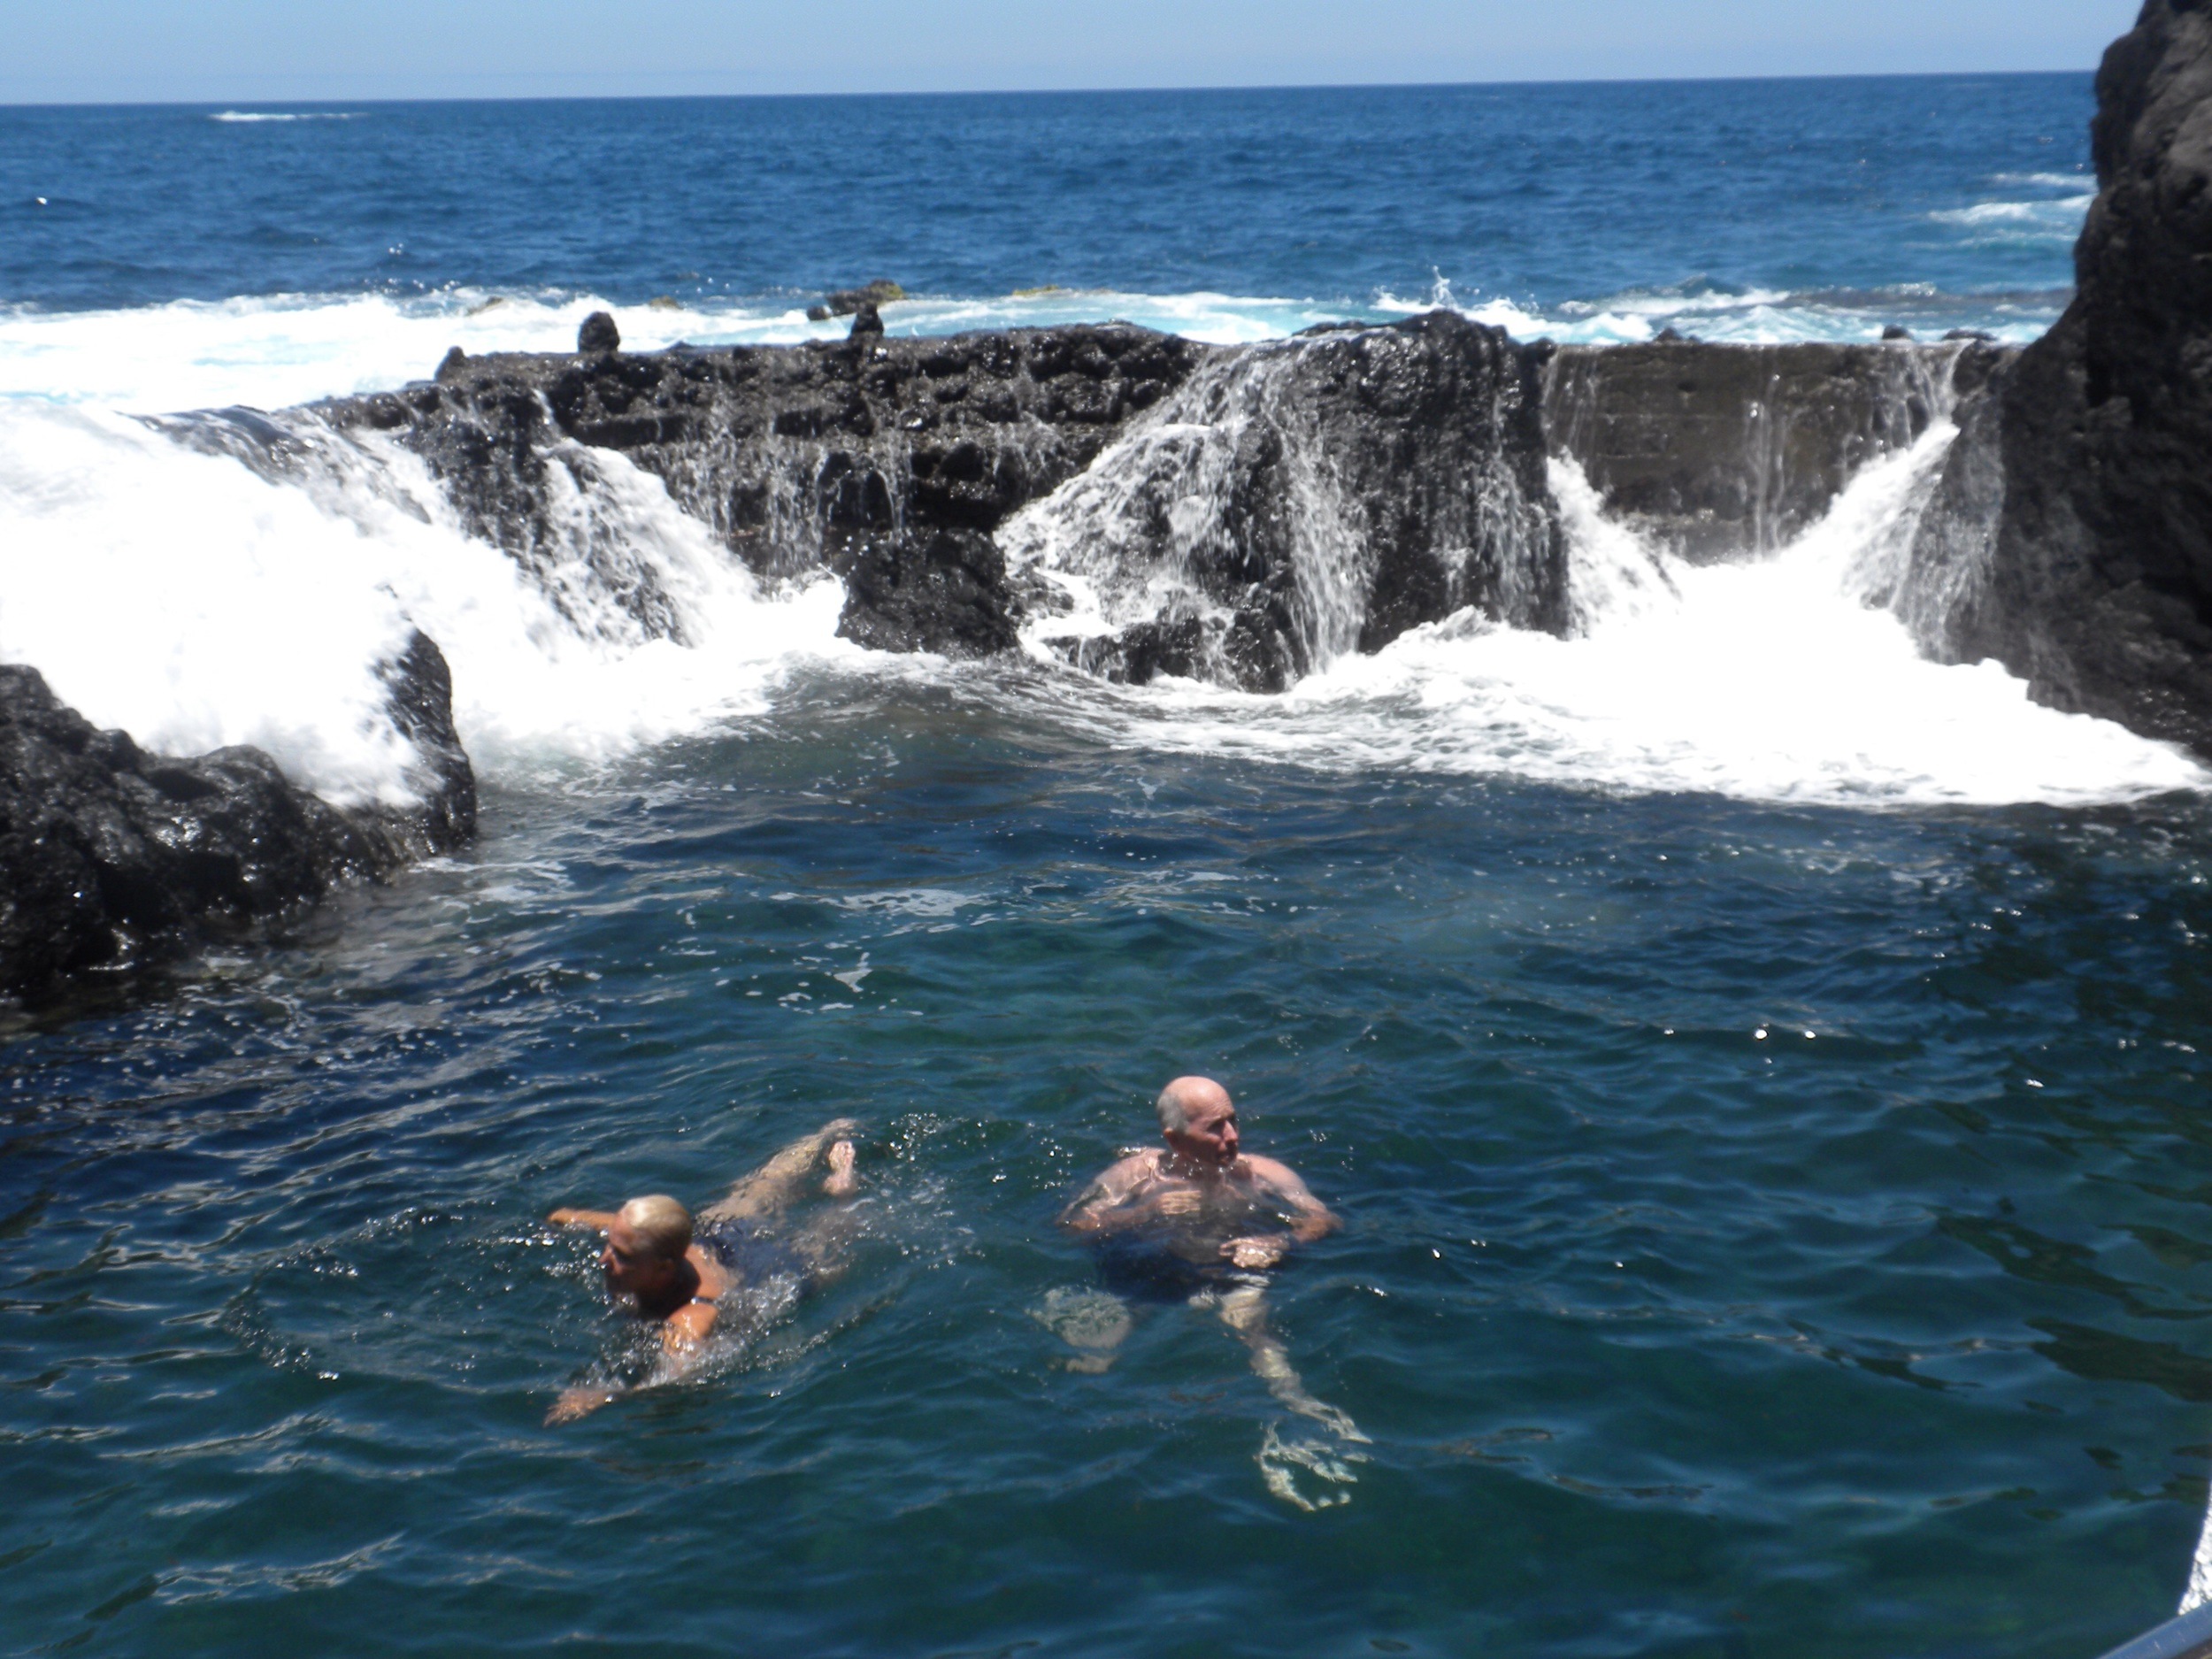 Some of our team members chose to swim in the cool Atlantic water in the volcanic pools.